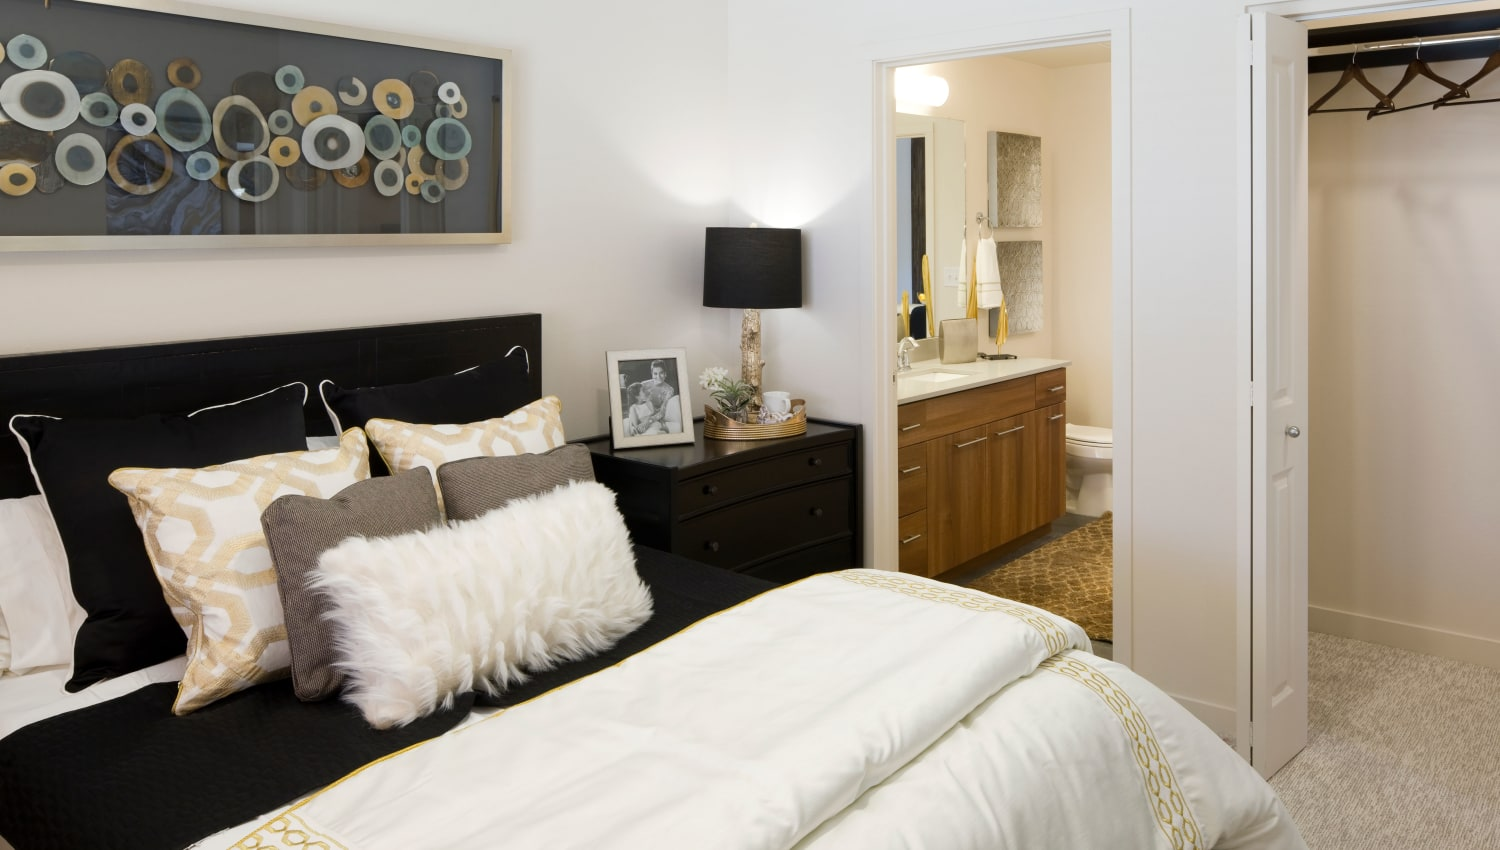 Master bedroom with attached bathroom at Olympus Alameda in Albuquerque, New Mexico